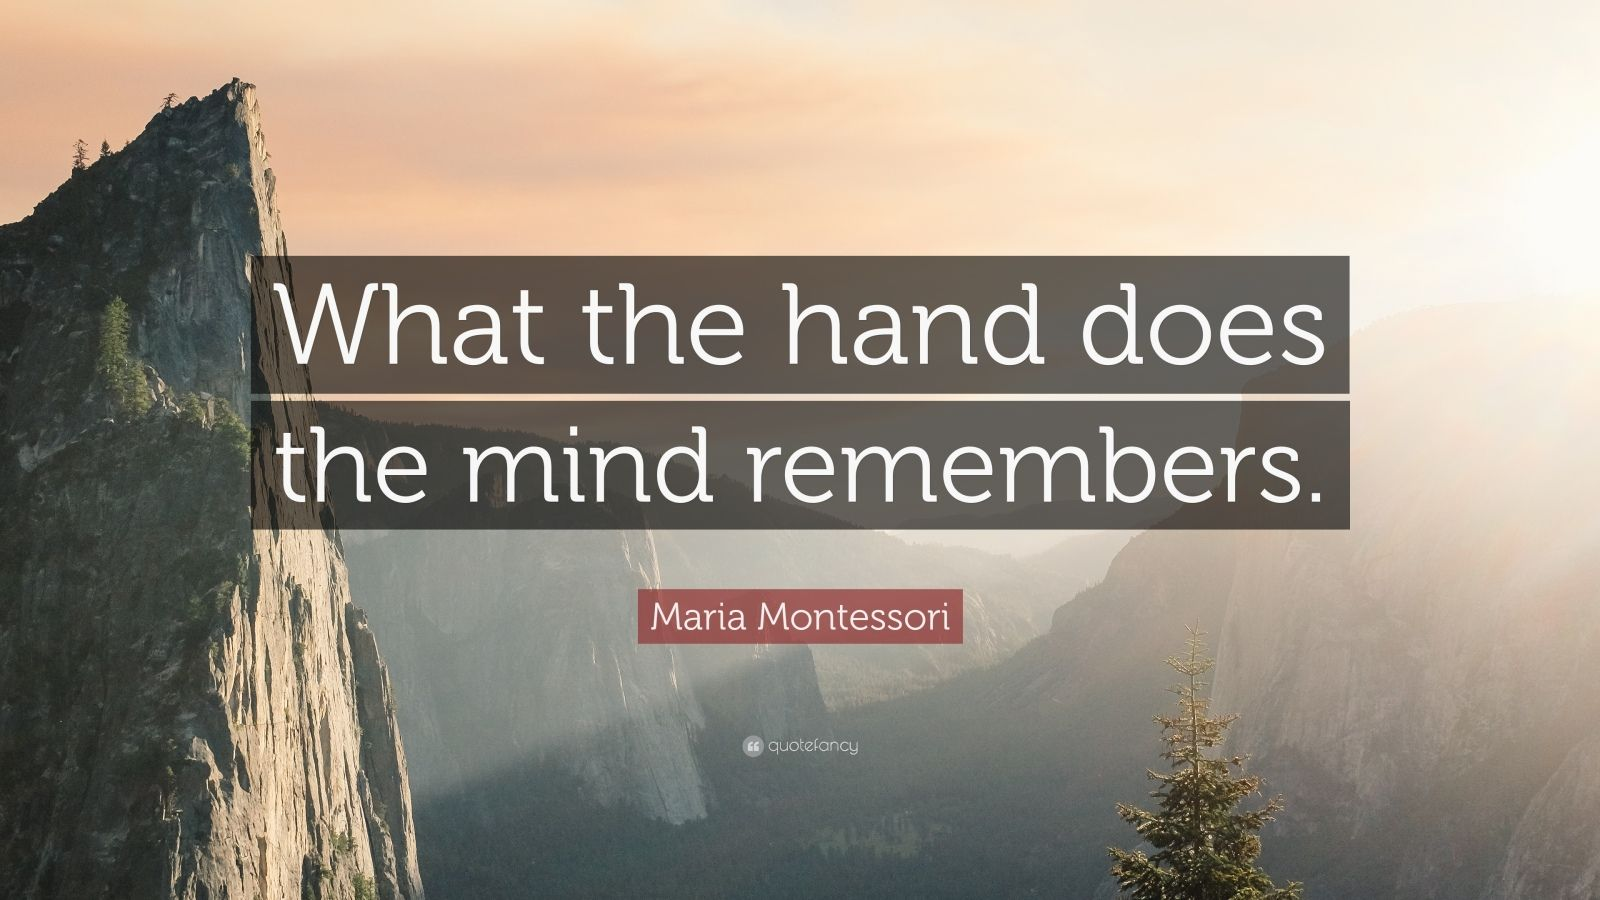 Islamic Quotes And Wallpapers Maria Montessori Quote What The Hand Does The Mind